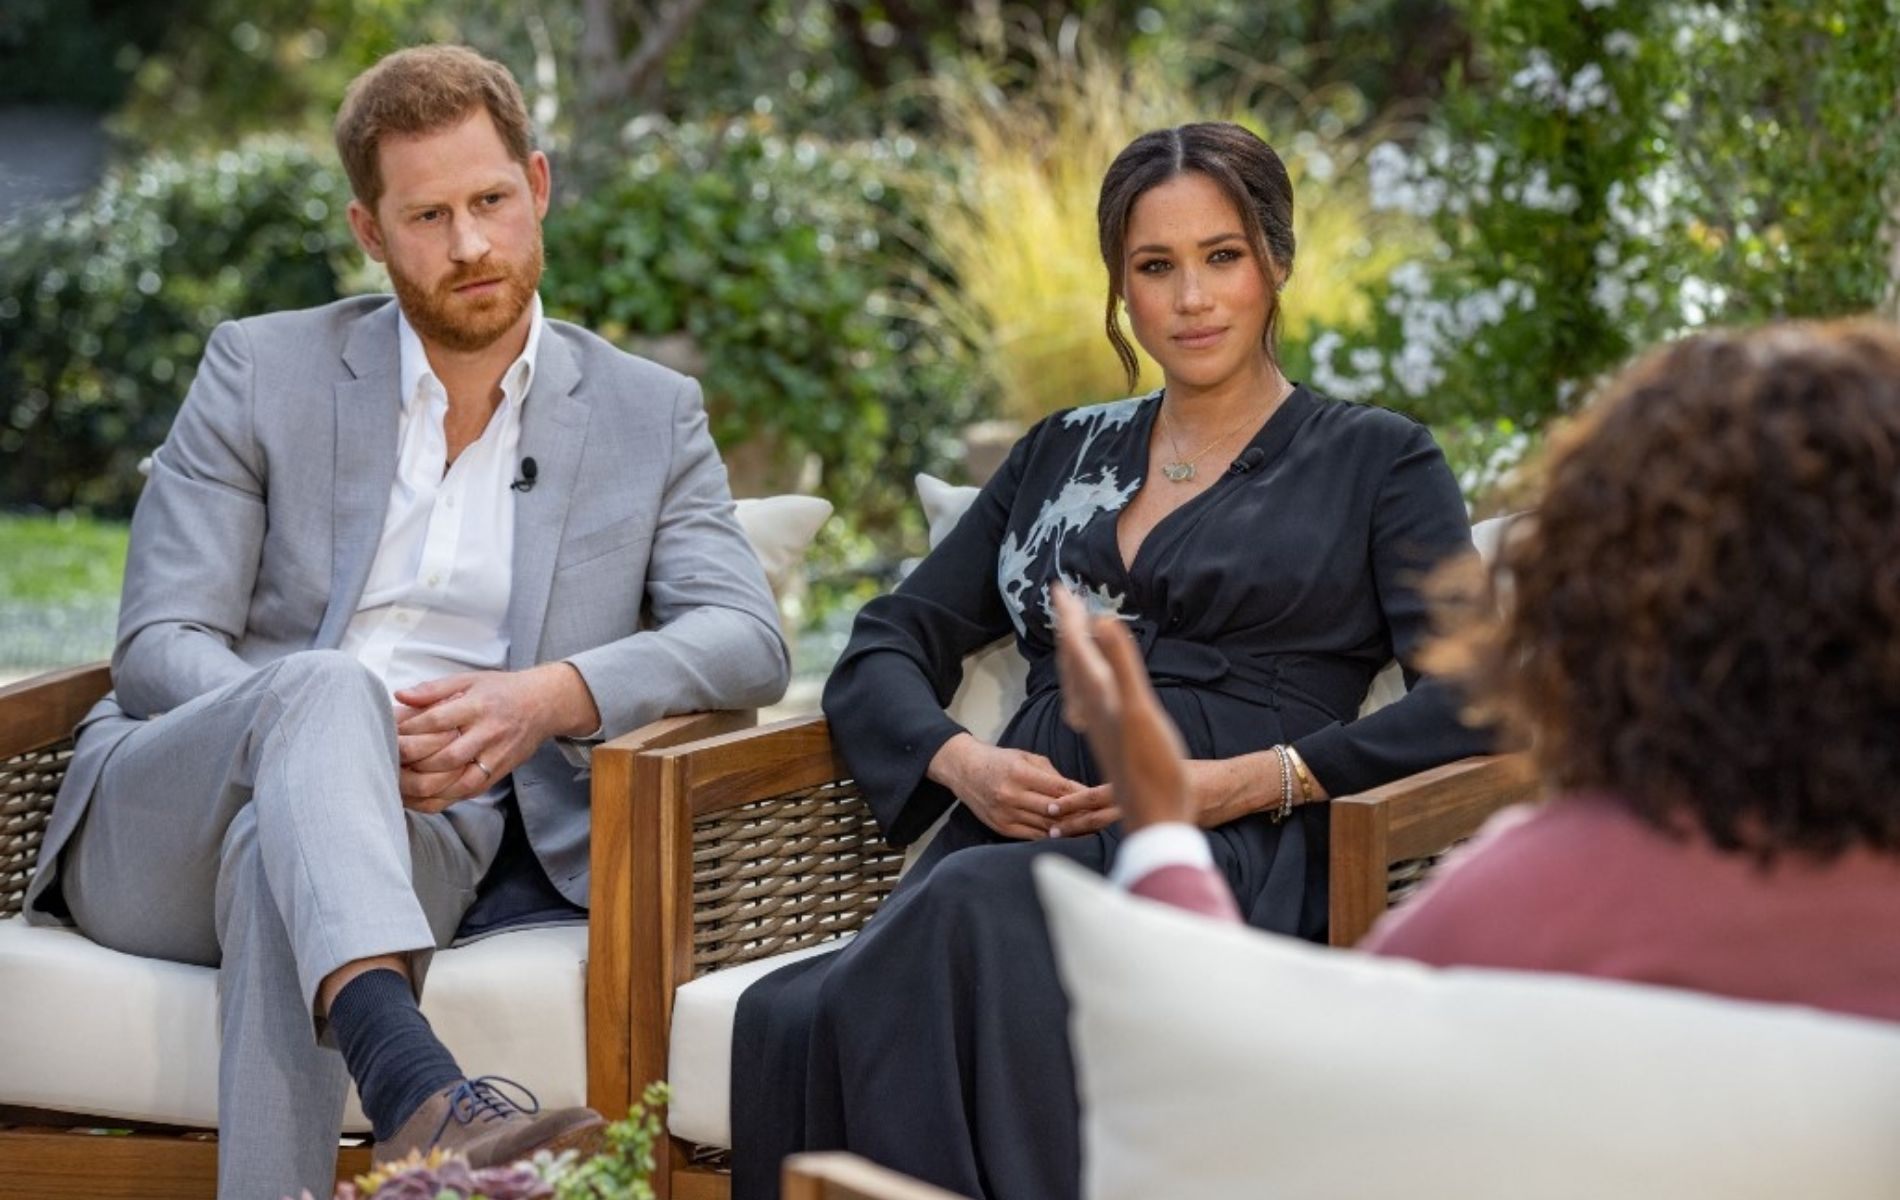 Prince Harry & Meghan Markle's Oprah Interview: The Unanswered Questions